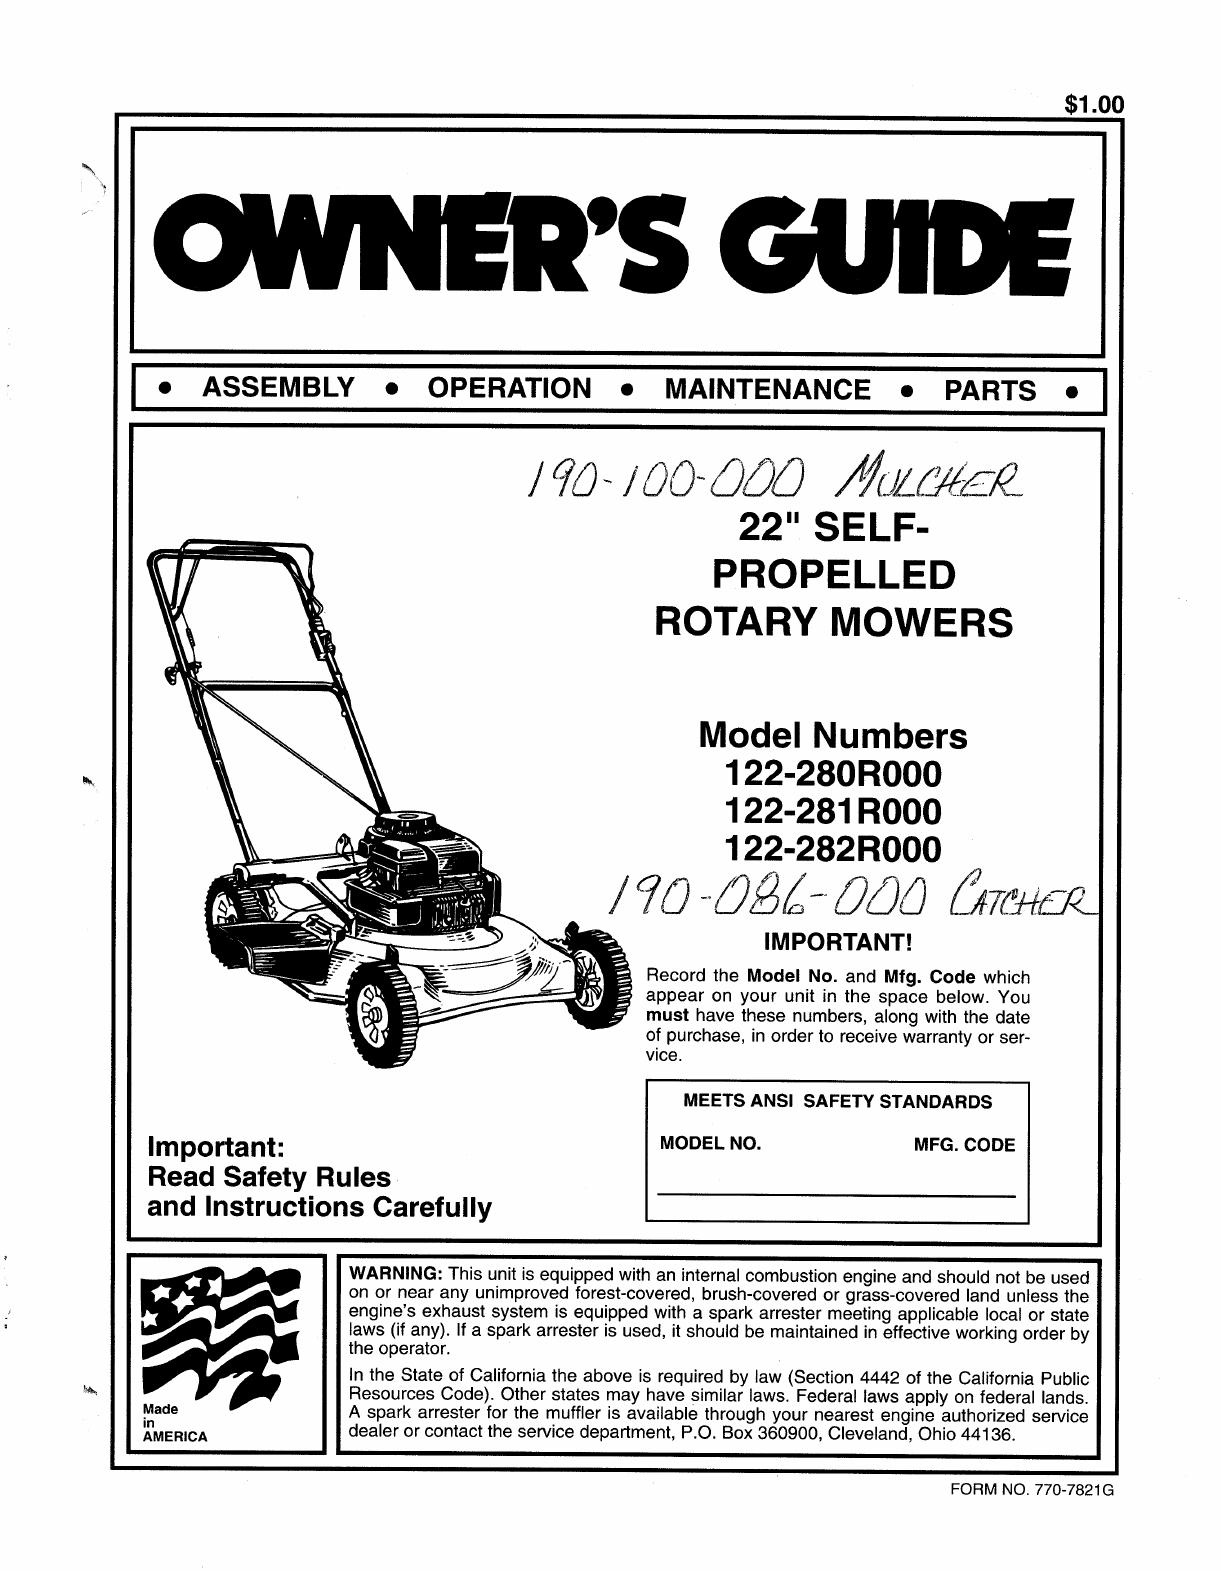 I Have A 2007 Bolens Lawn Tractor And I Need To Replace Manual Guide